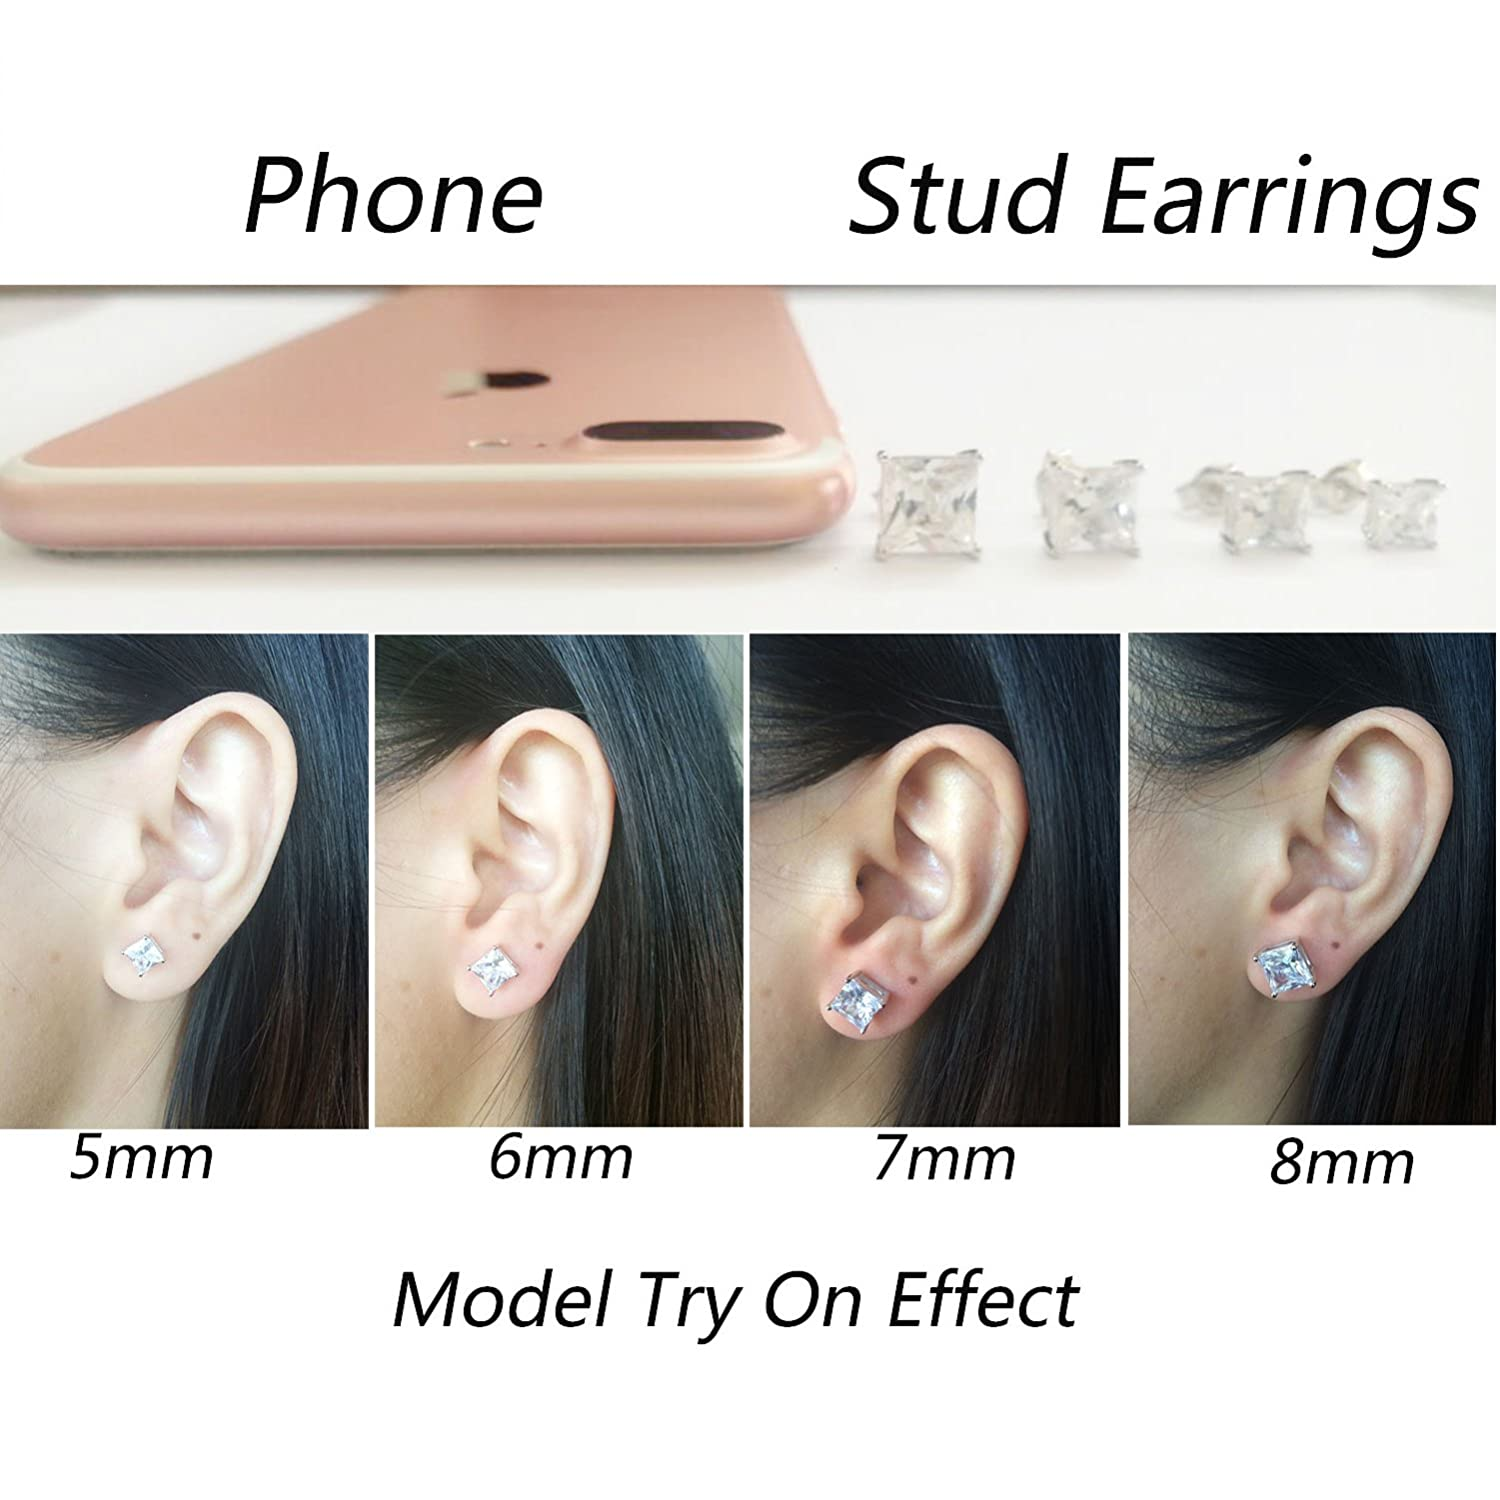 cancel gold diamond yellow mens micropave out rhpinterestcom iced fake a plated leave cz stud elegant great pesquisademercadoinforhpesquisademercadoinfo reply earring earrings cool